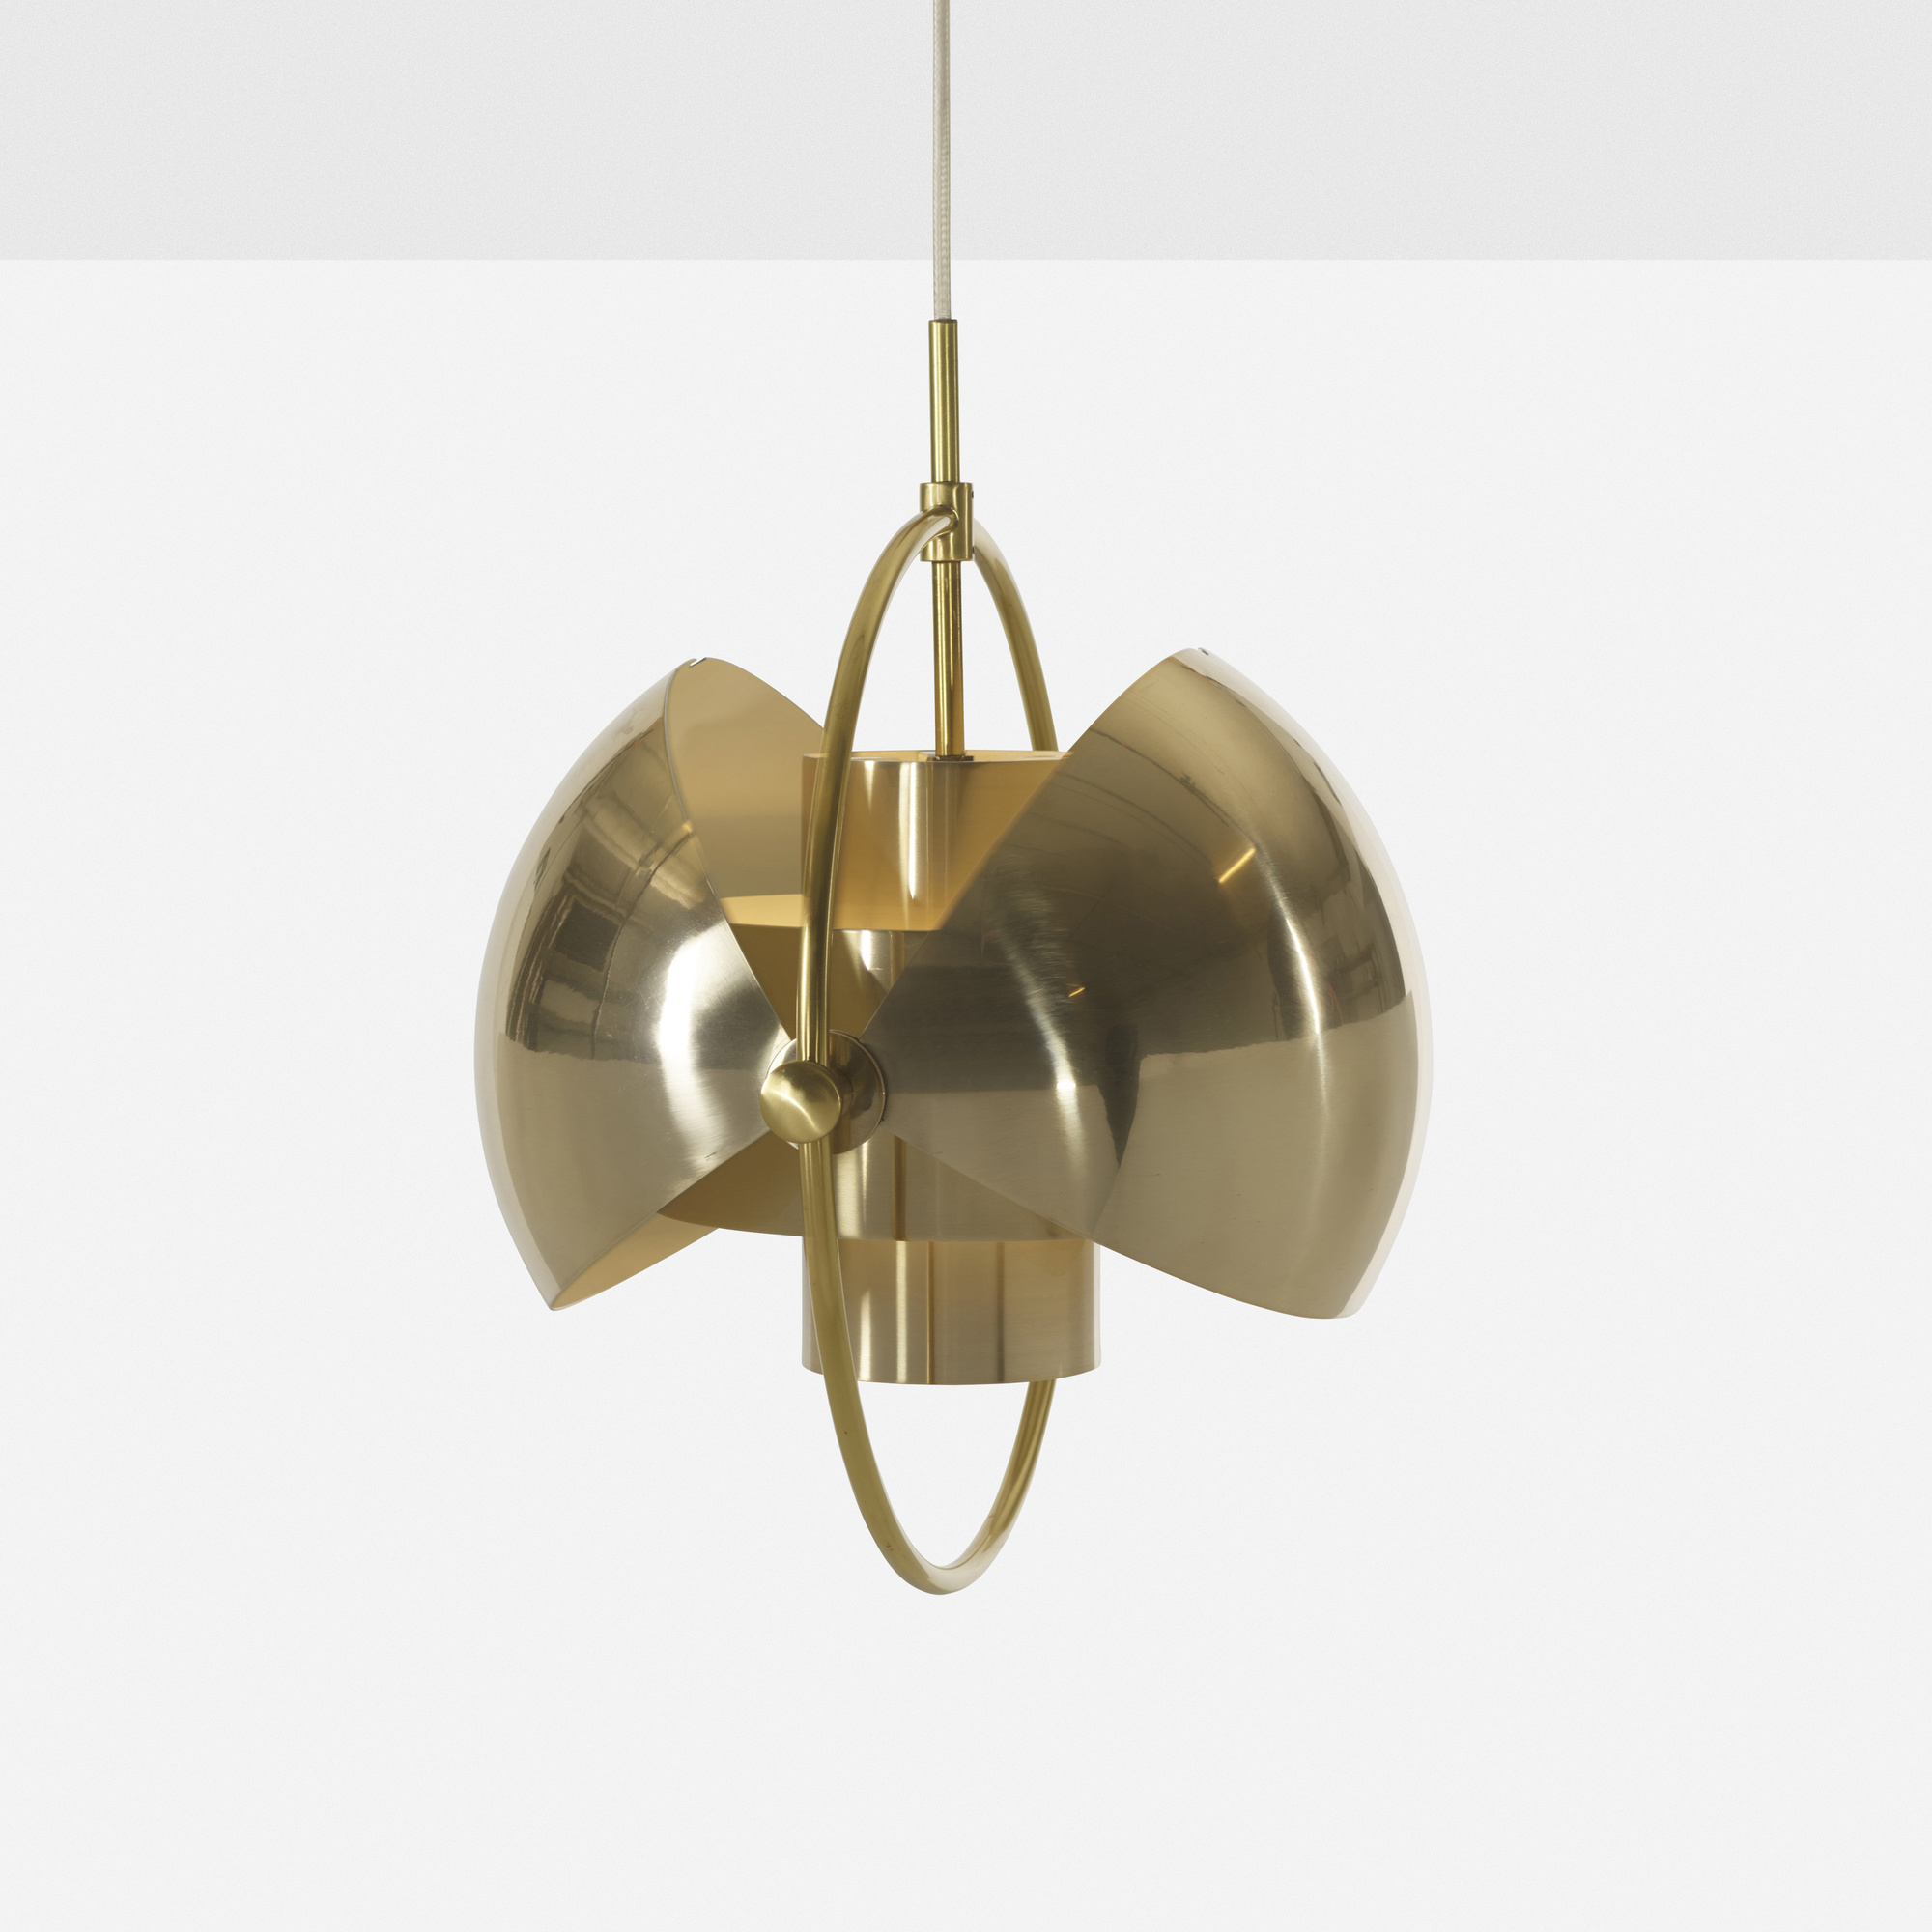 225: Louis Weisdorf / Multi-Lite pendant lamp (5 of 5)